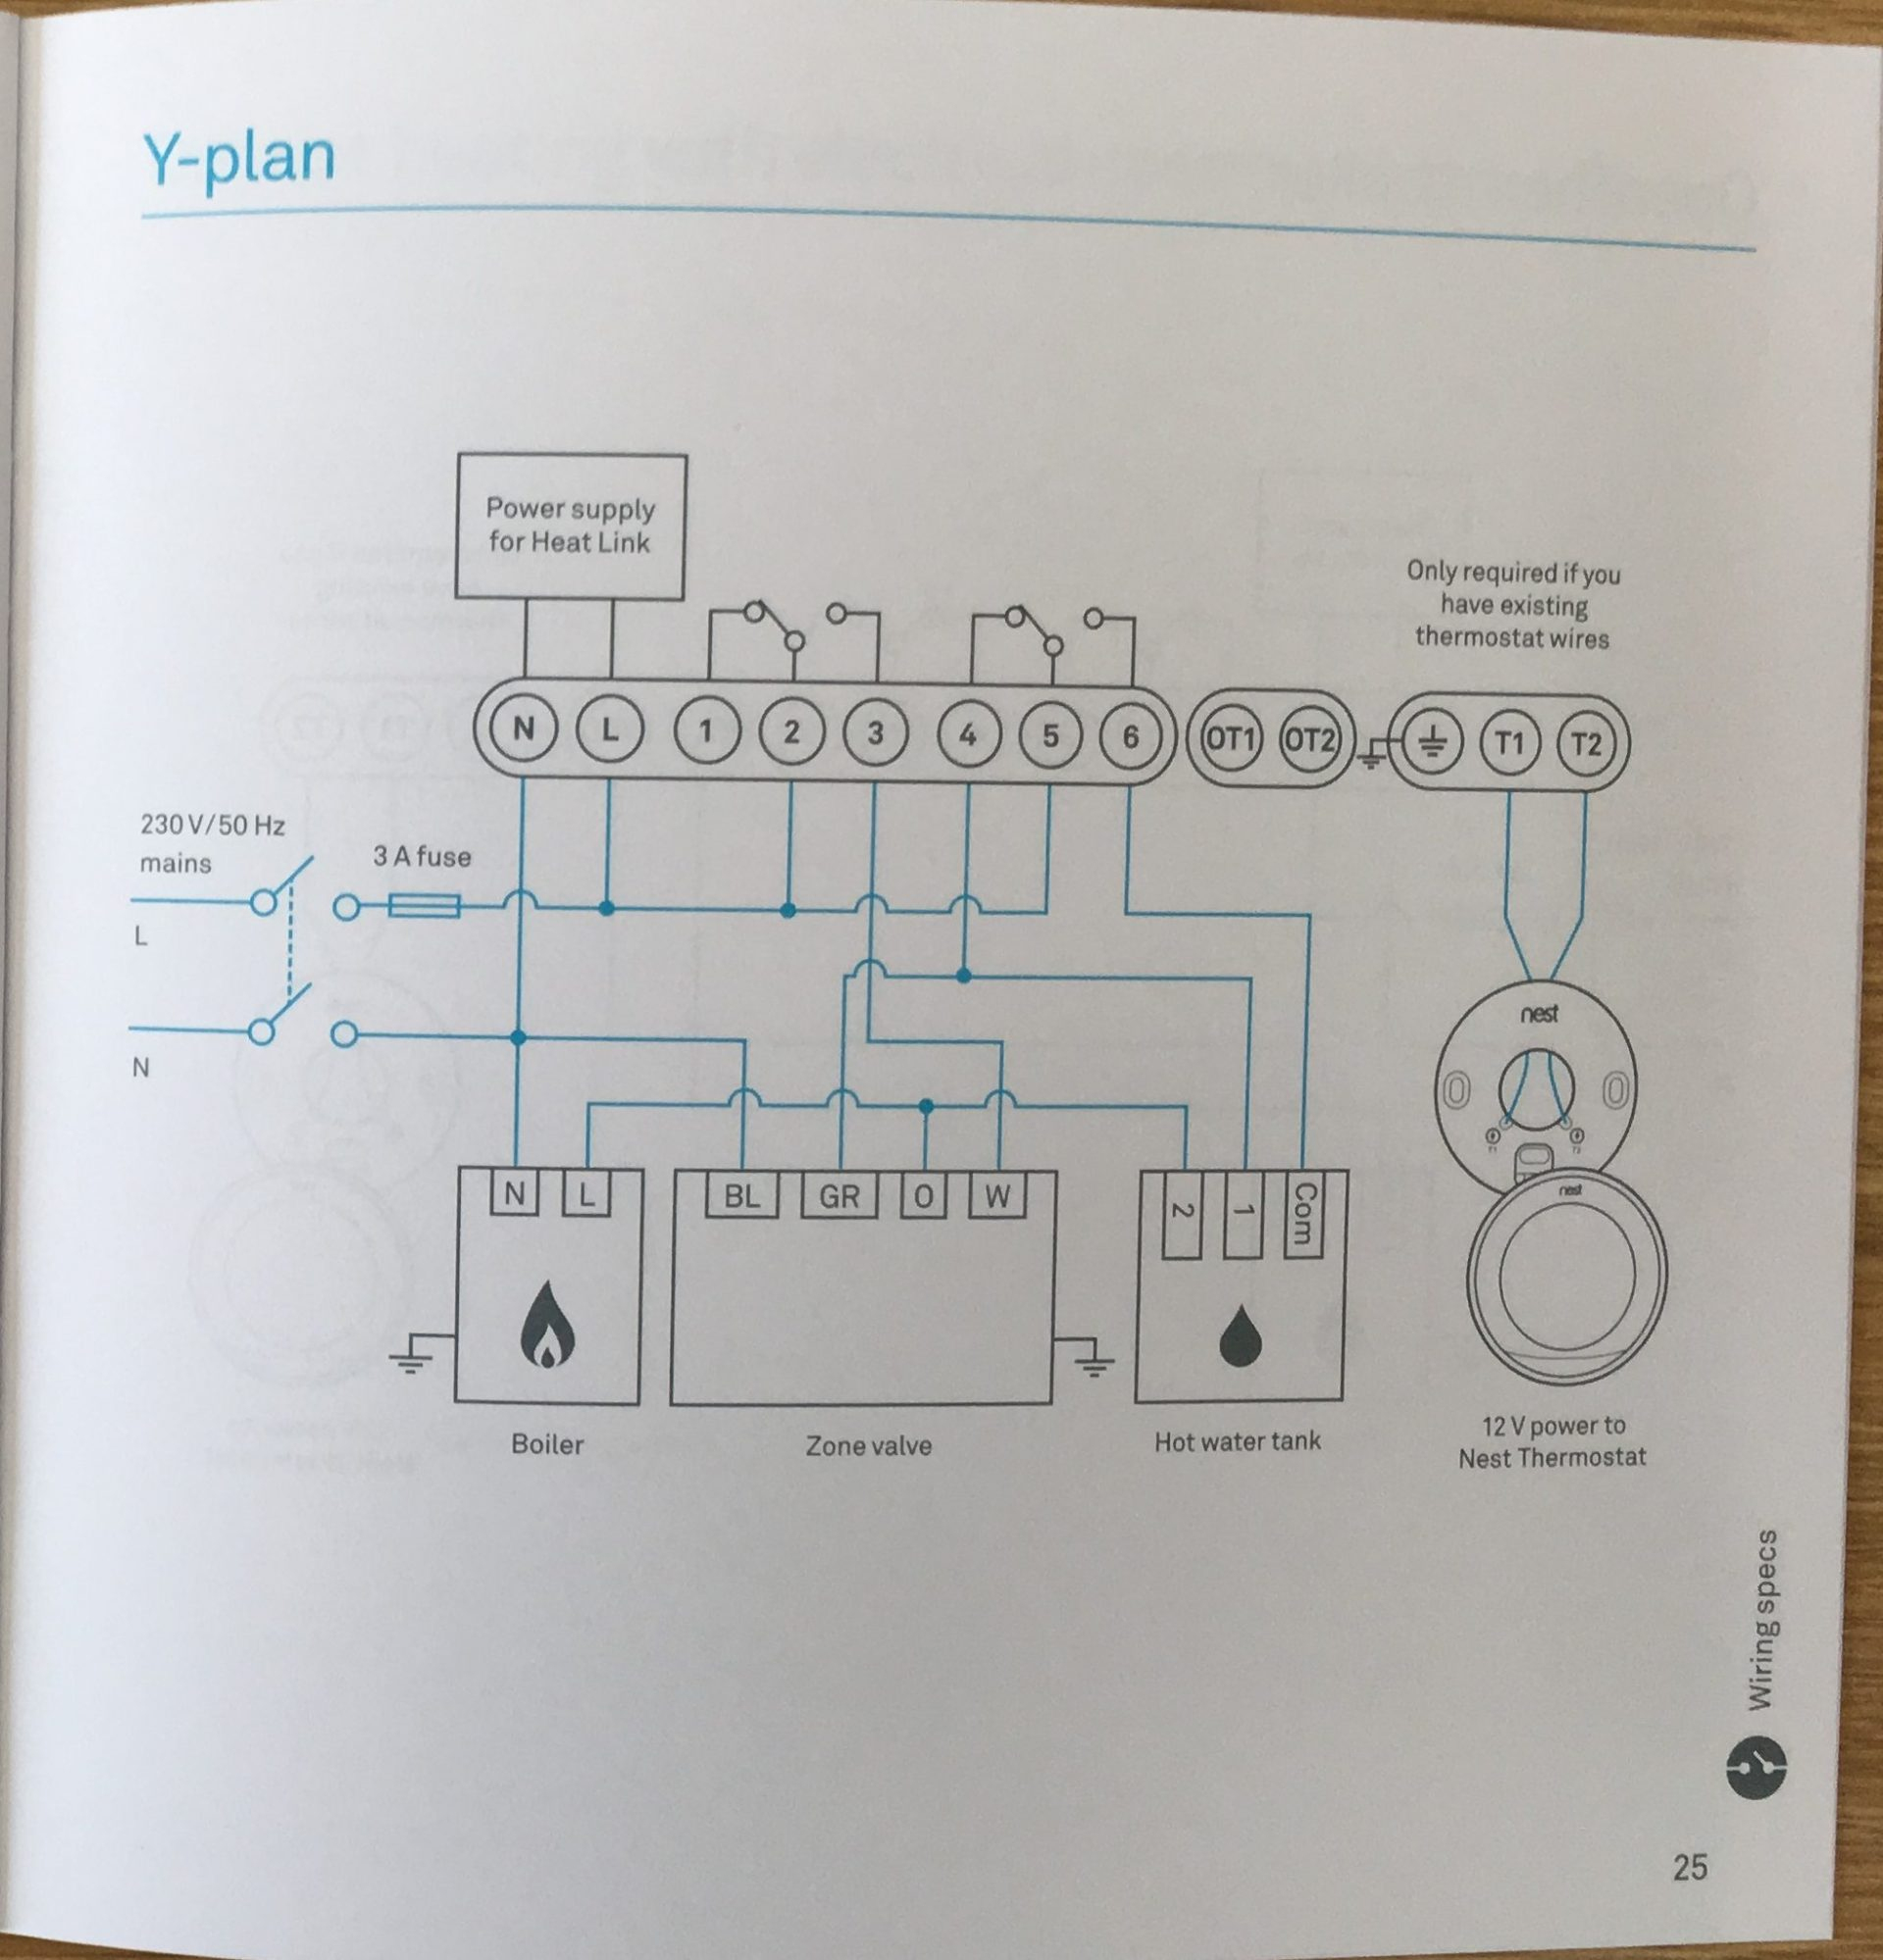 How To Install The Nest Learning Thermostat (3Rd Gen) In A Y-Plan - Nest Wiring Diagram Jumper W2 E